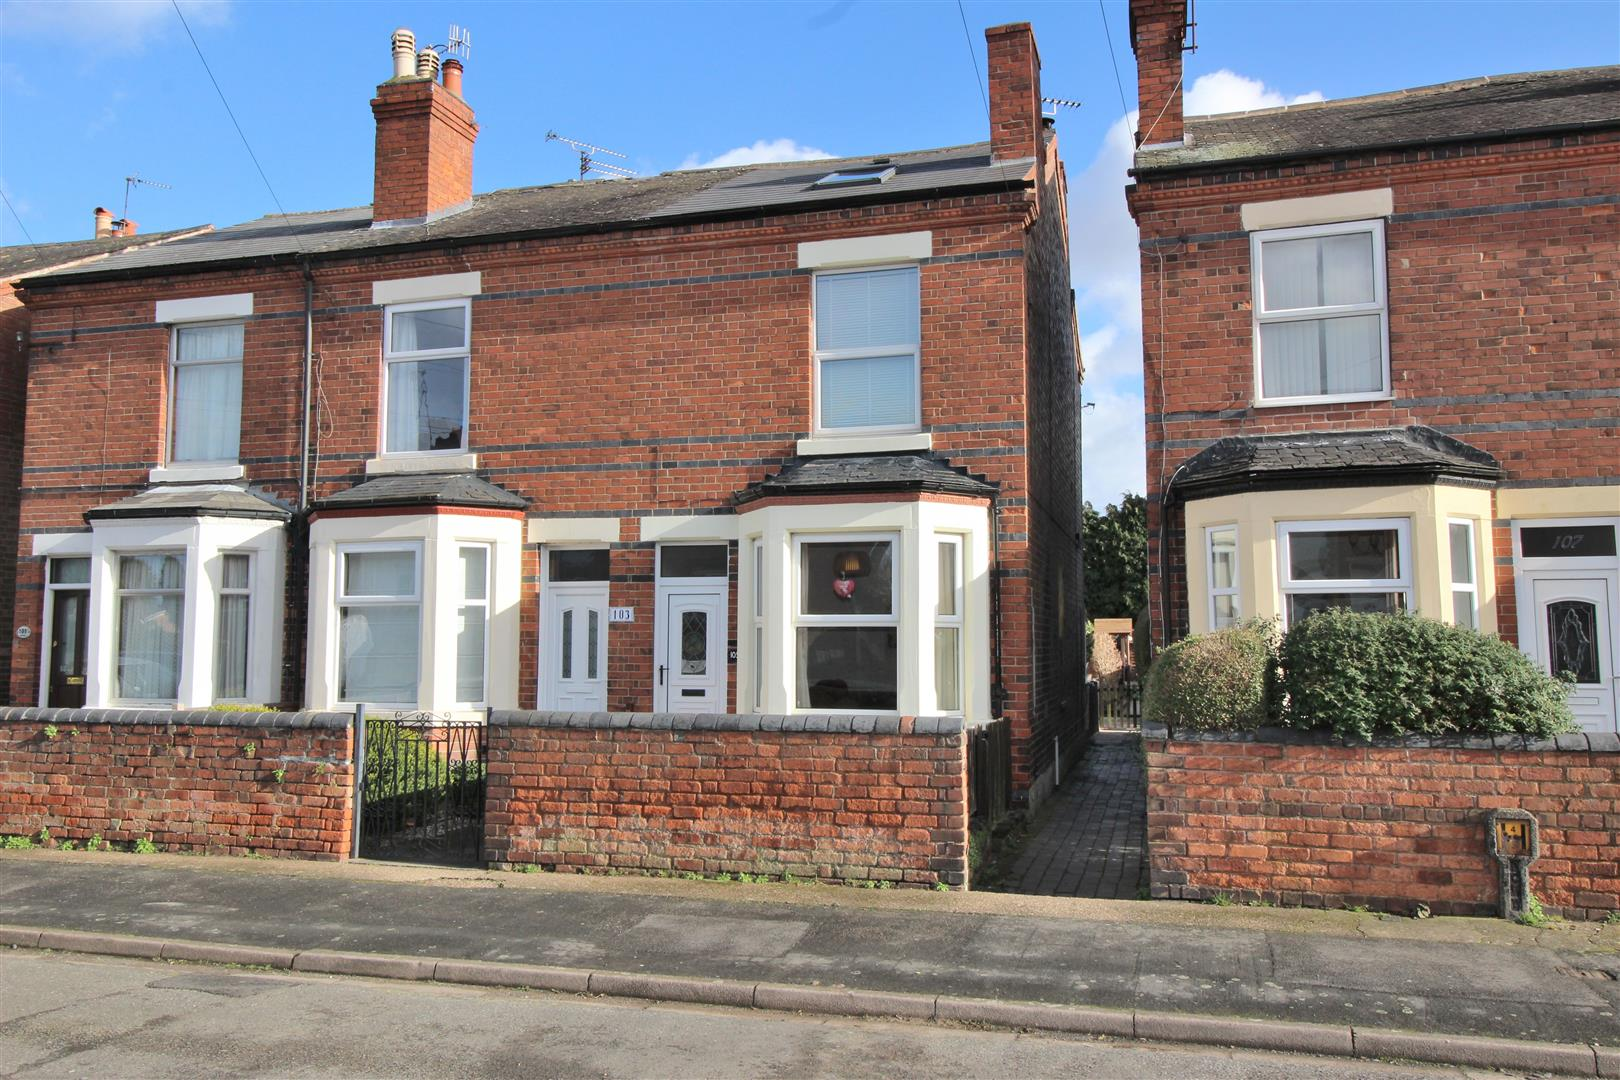 3 Bedrooms End Of Terrace House for sale in Trent Road, Beeston Rylands